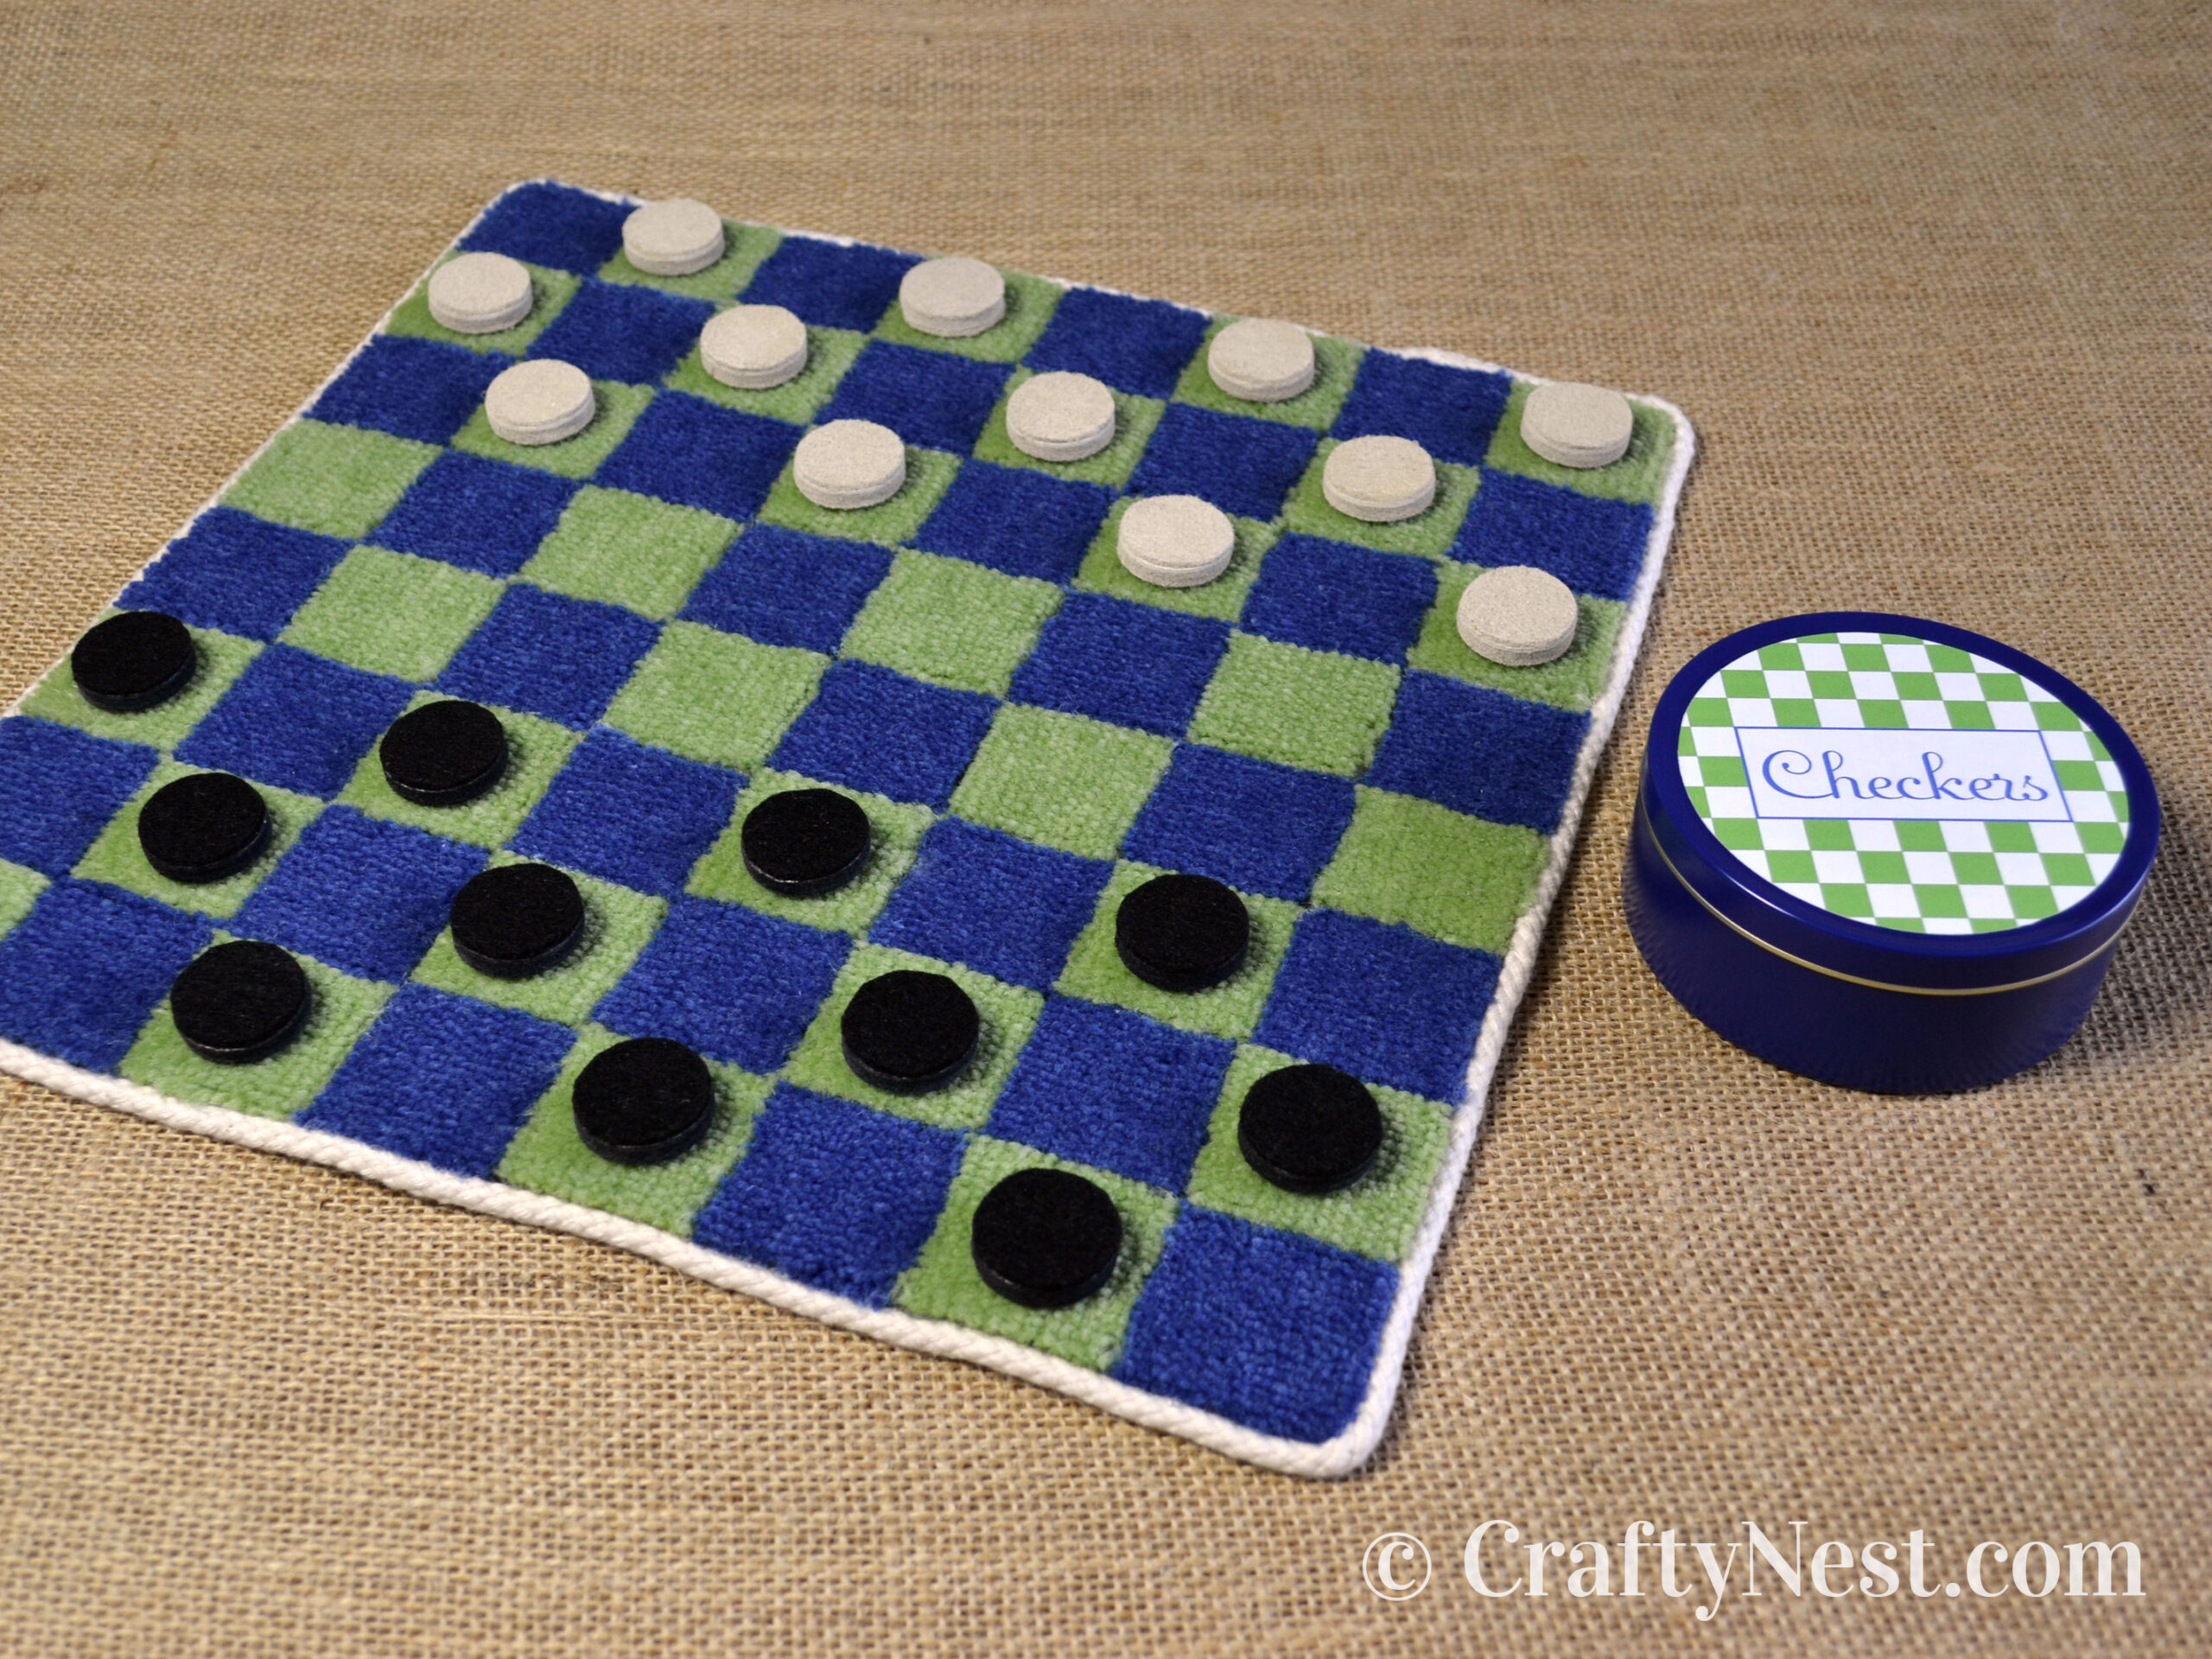 DIY carpet-sample checkers game, photo